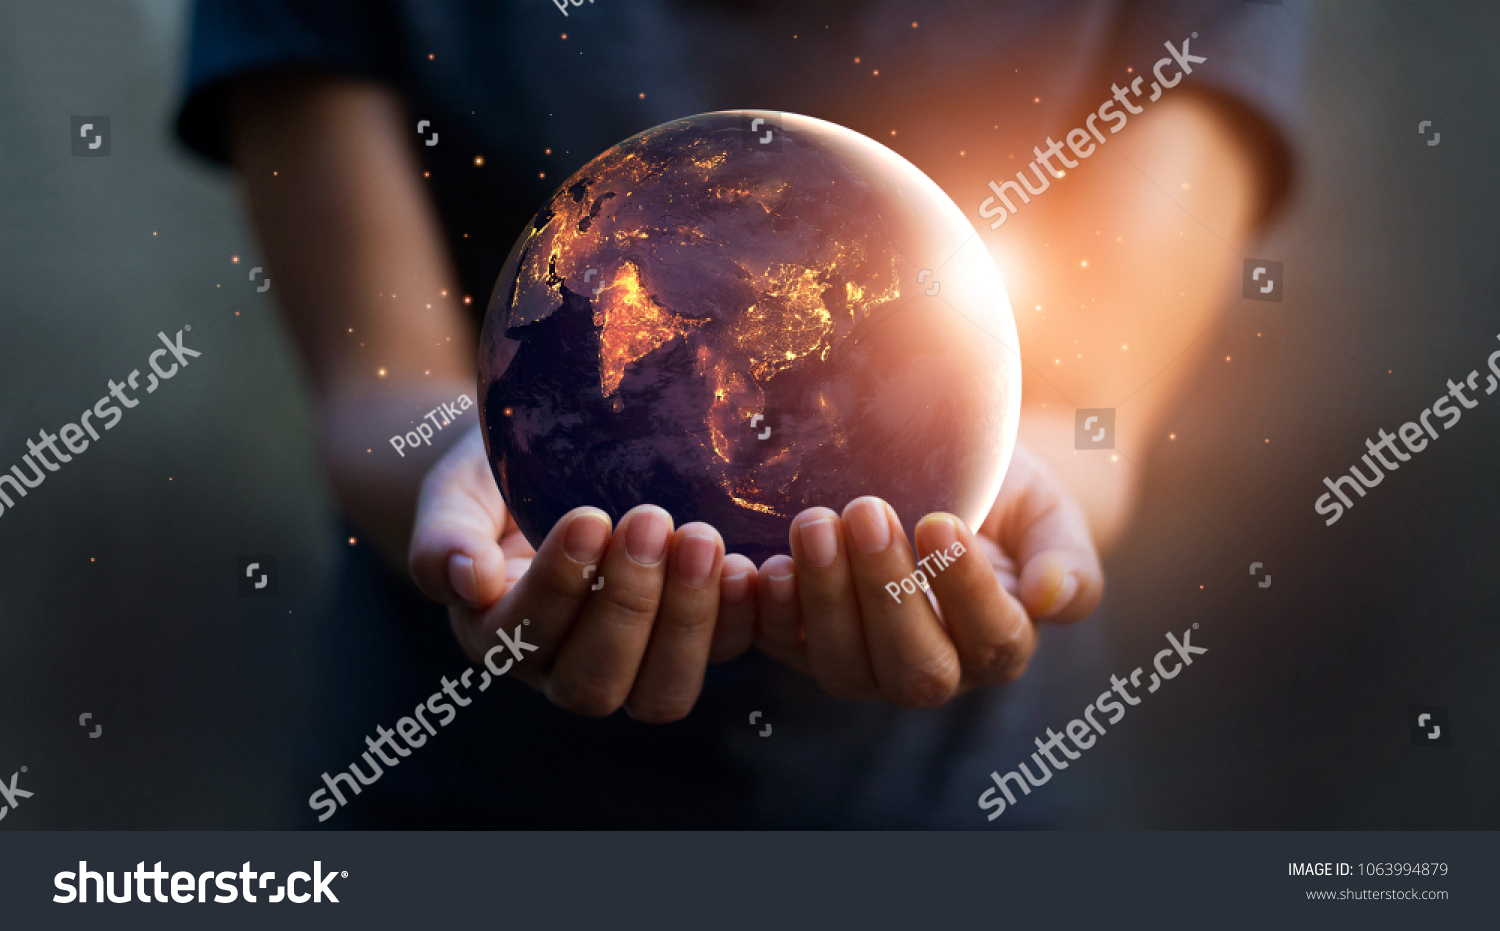 stock-photo-earth-at-night-was-holding-in-human-hands-earth-day-energy-saving-concept-elements-of-this-image-1063994879